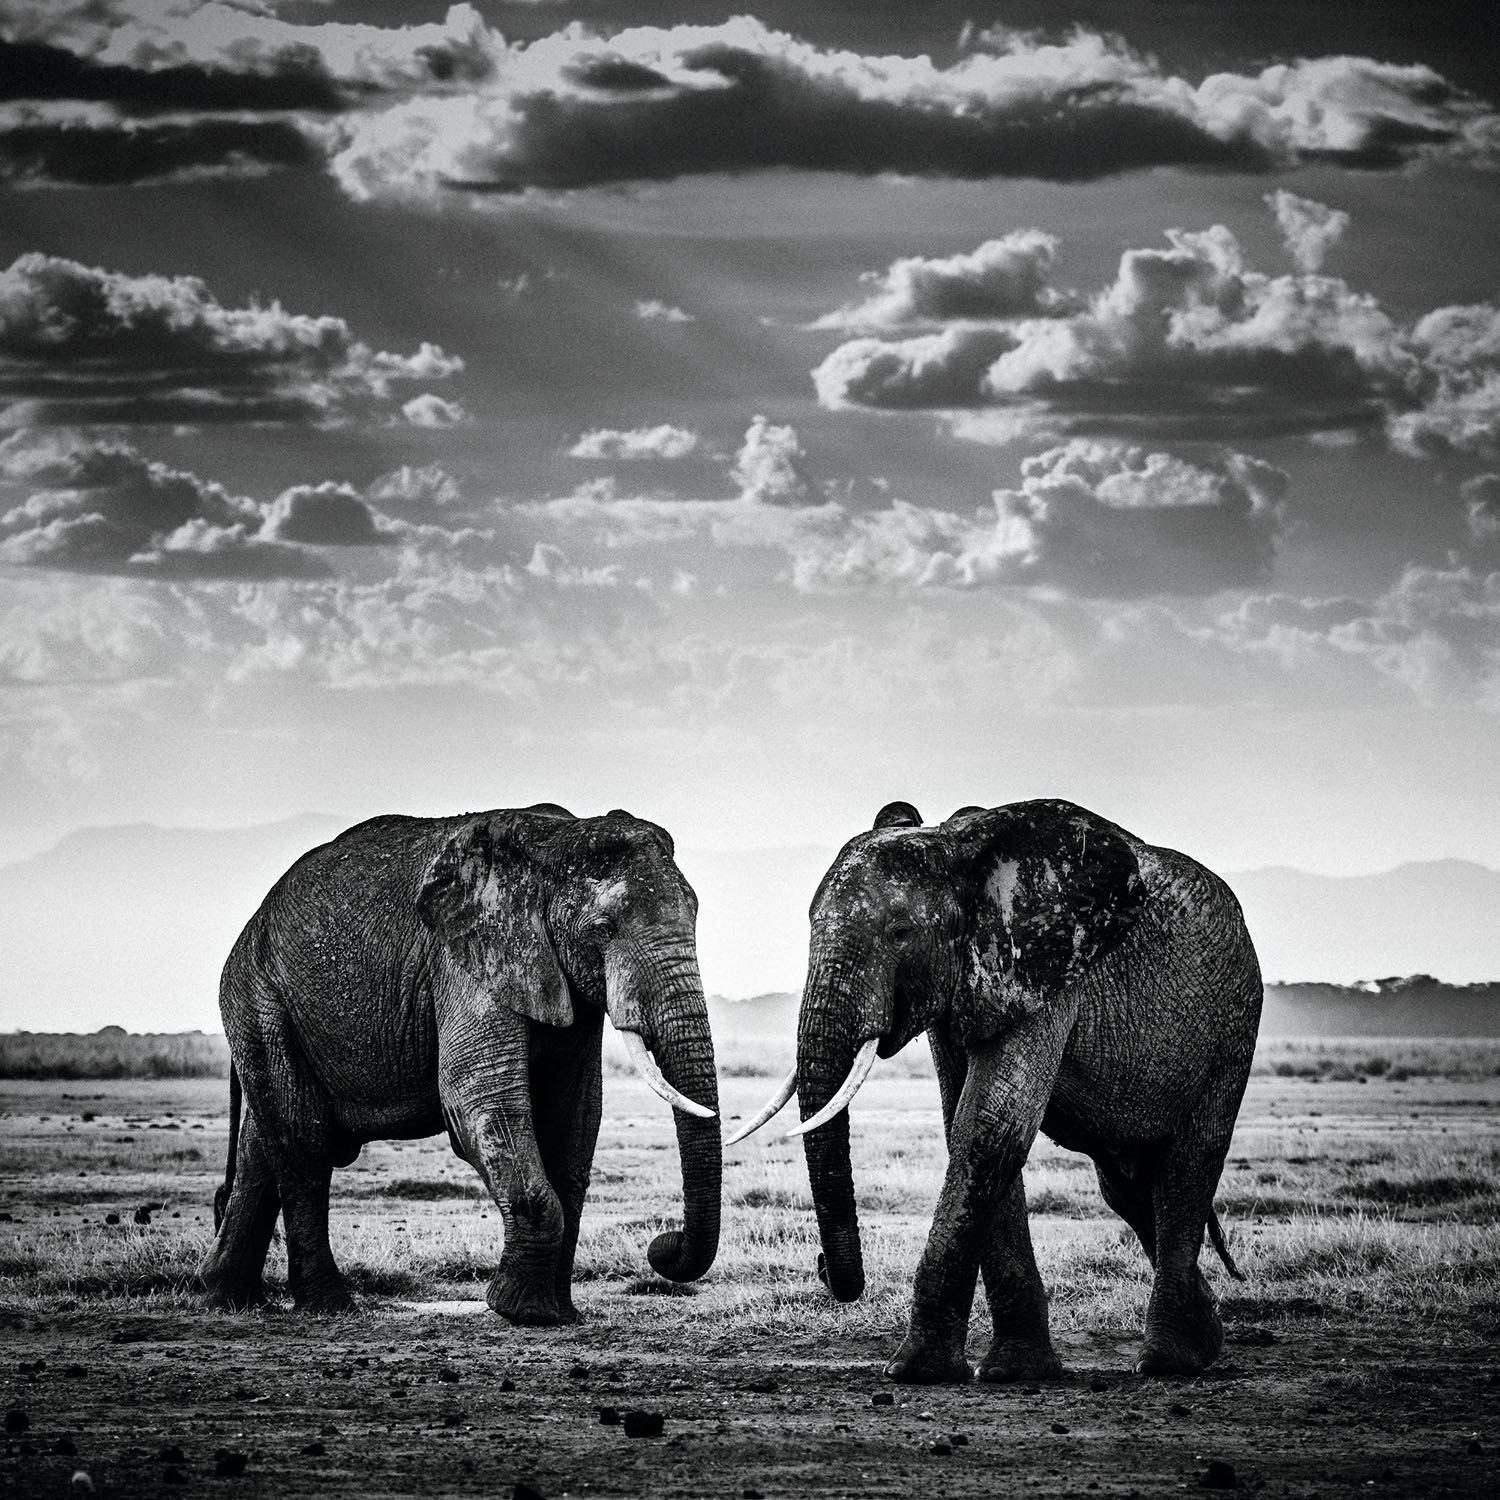 The Family Album of Wild Africa; Elephant - The Road is Closed